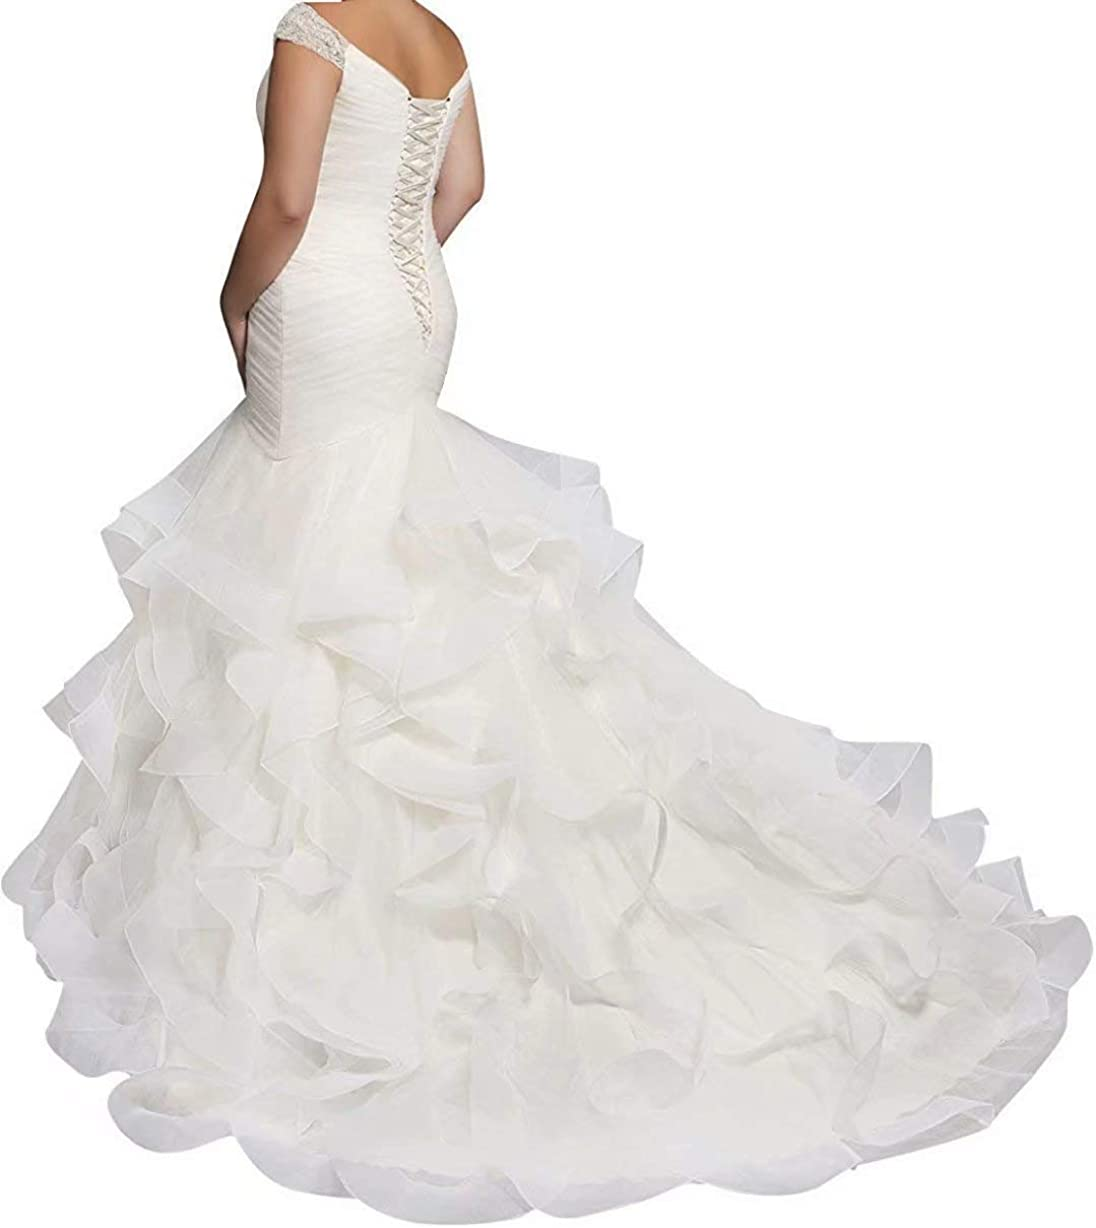 QueenBridal Women's Mermaid Wedding Dress Plus Size Wedding Gowns for Bride Cap Sleeve Beaded Bridal Gowns QU62